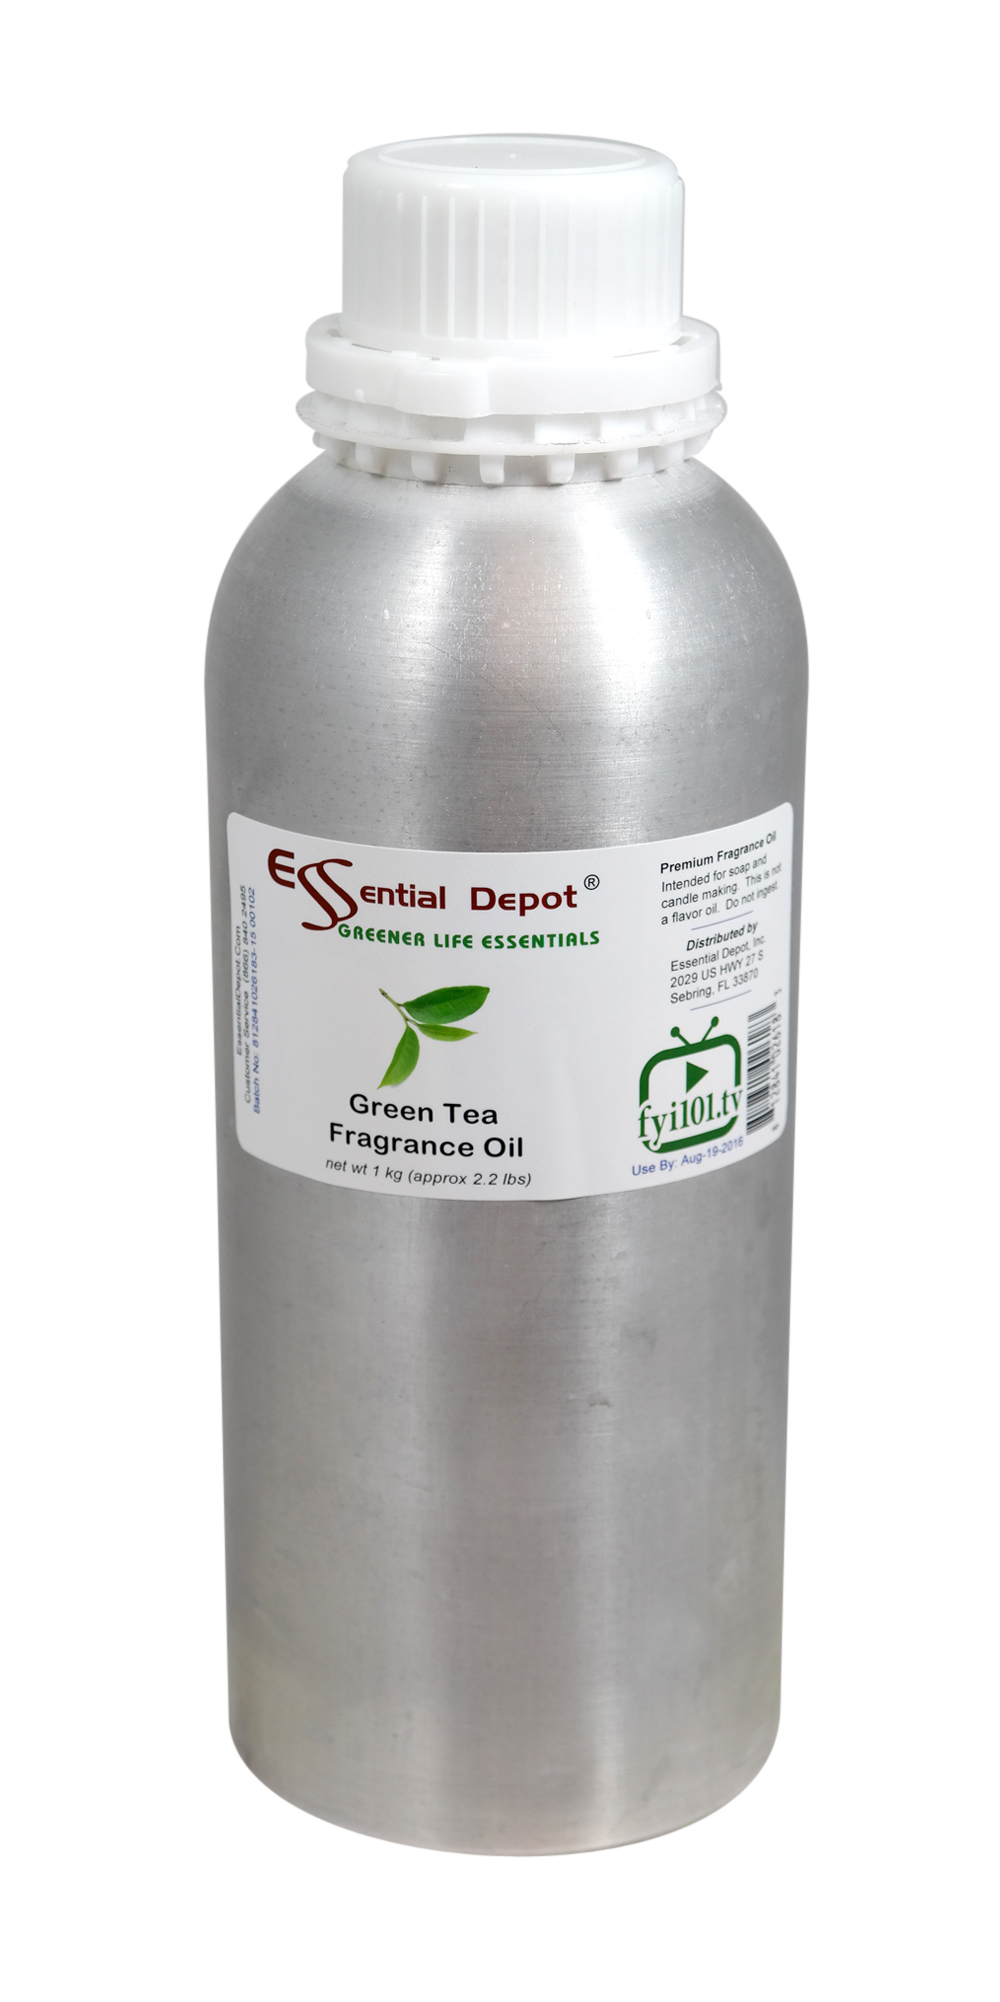 Green Tea Fragrance Oil - 1 kg. - Approx 2.2 lbs. - FREE US SHIPPING